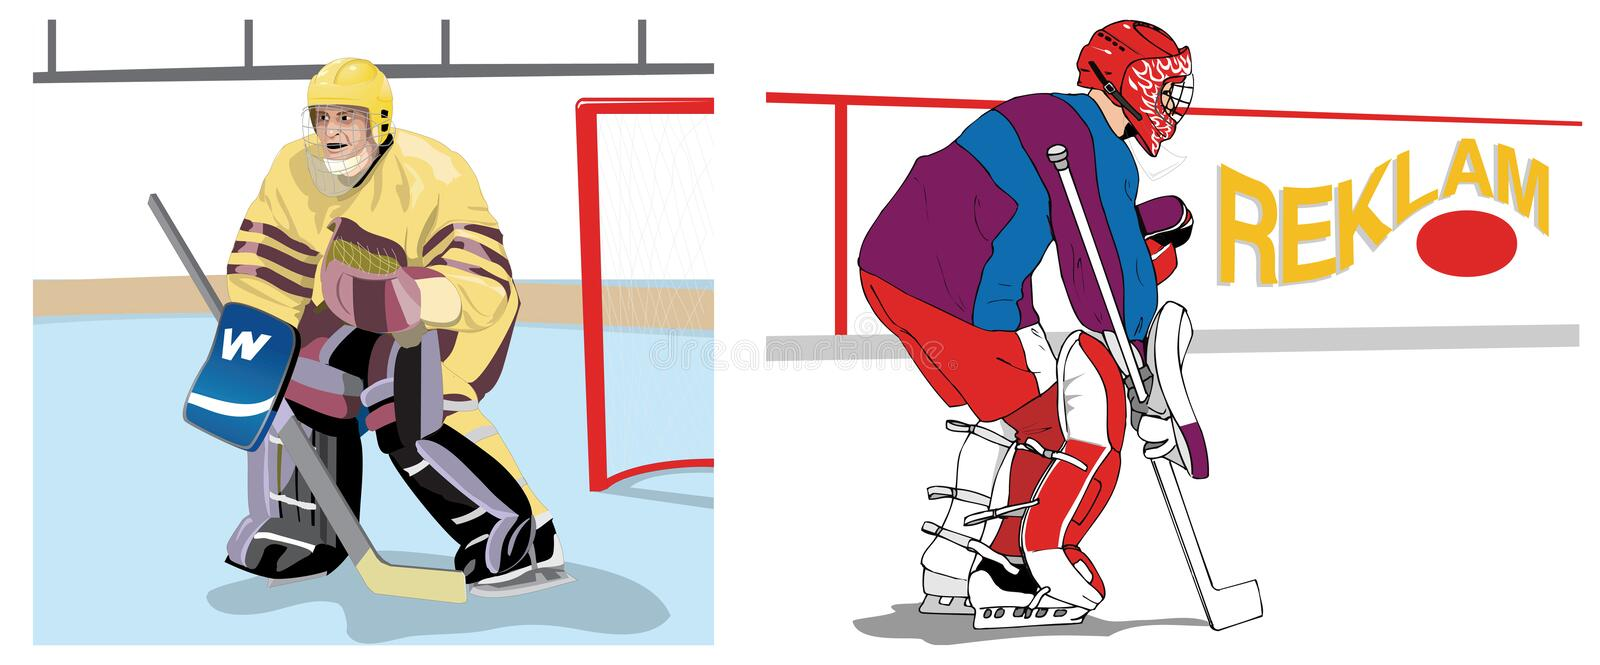 Goalkeepers. Ice hockey goal keepers defending position vector illustration